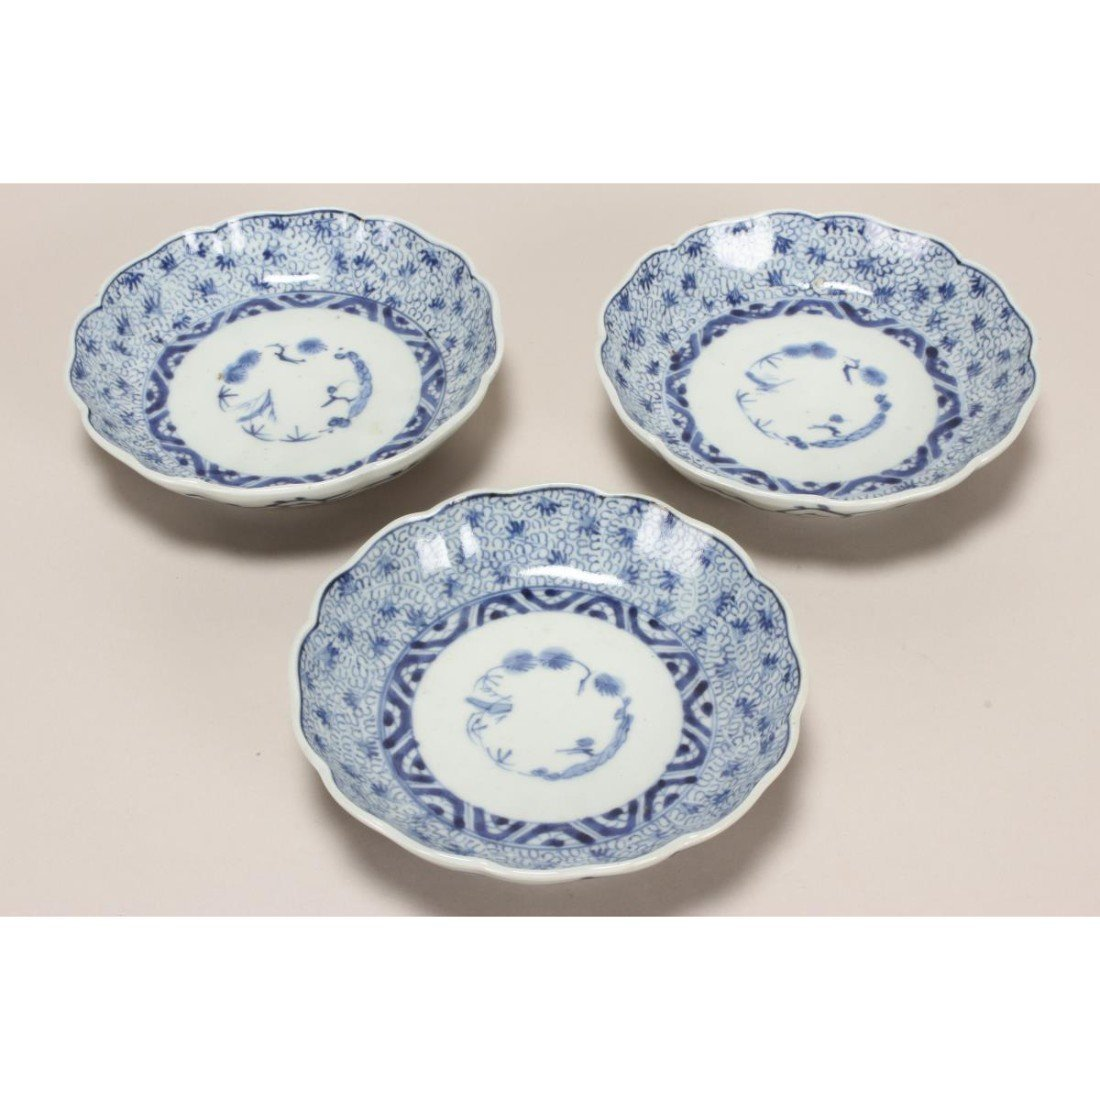 Three 19th Century Japanese Blue and White Bowls,